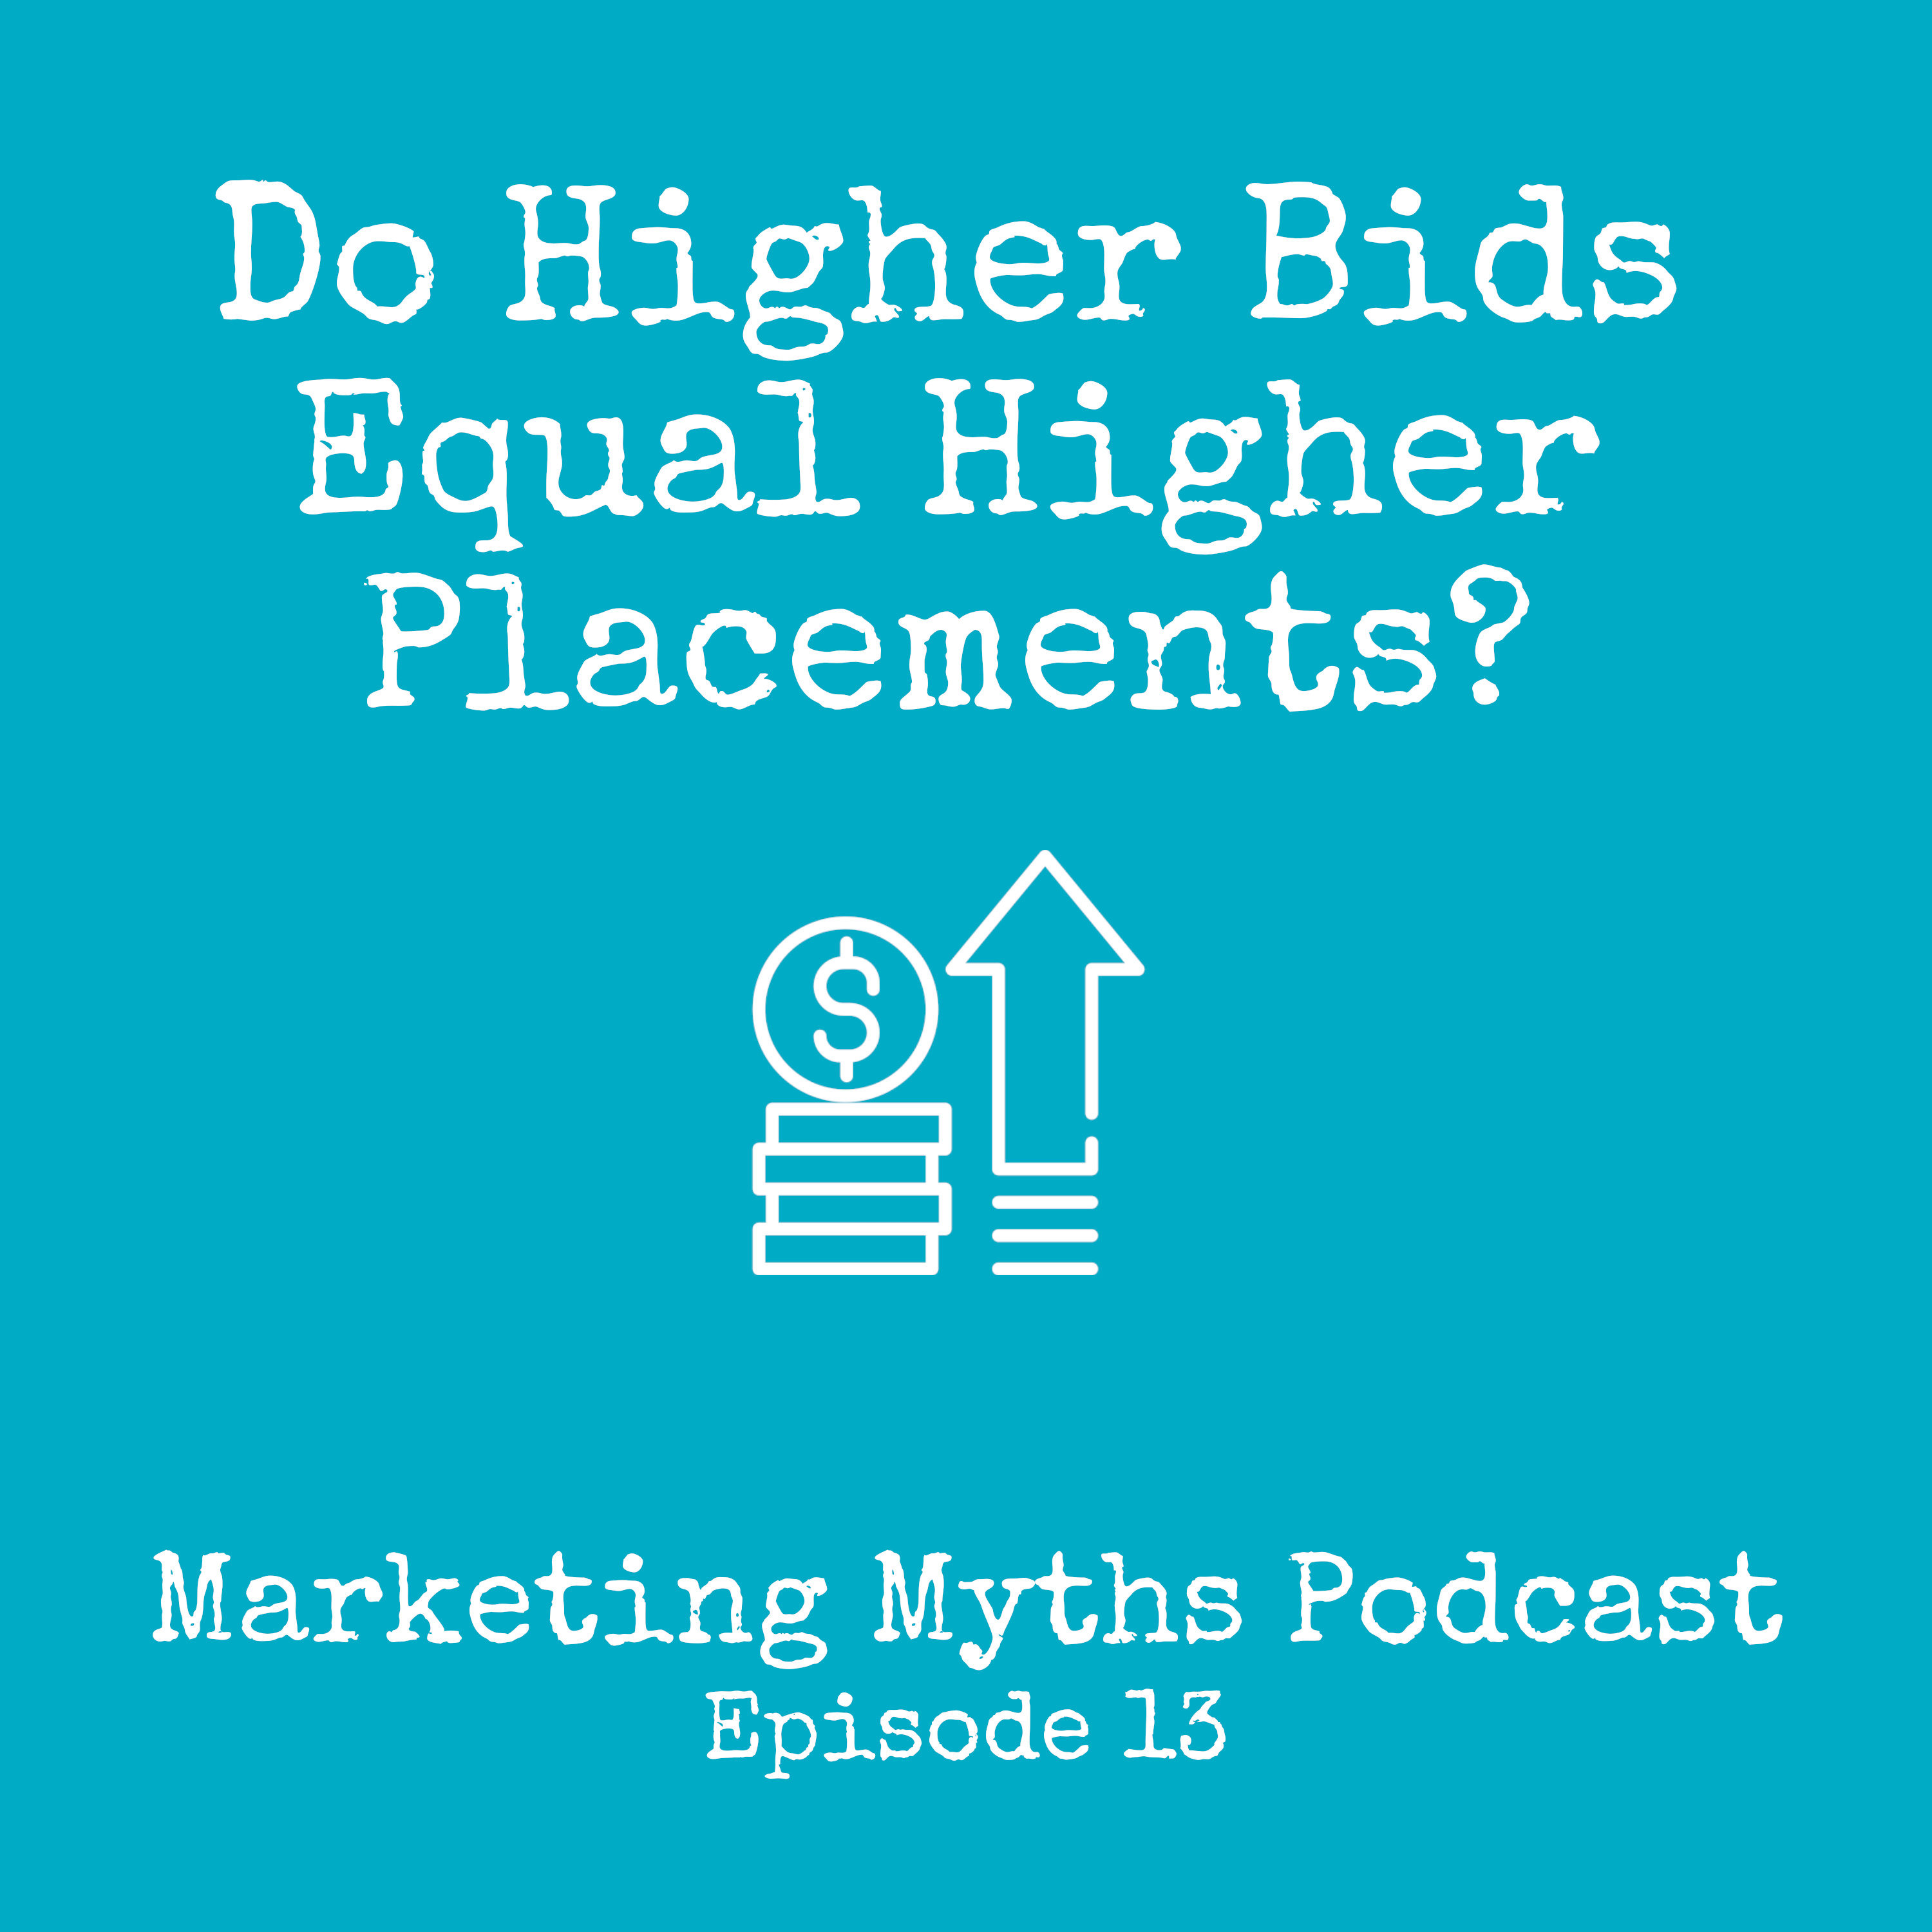 Higher Bids Equal Higher Placements